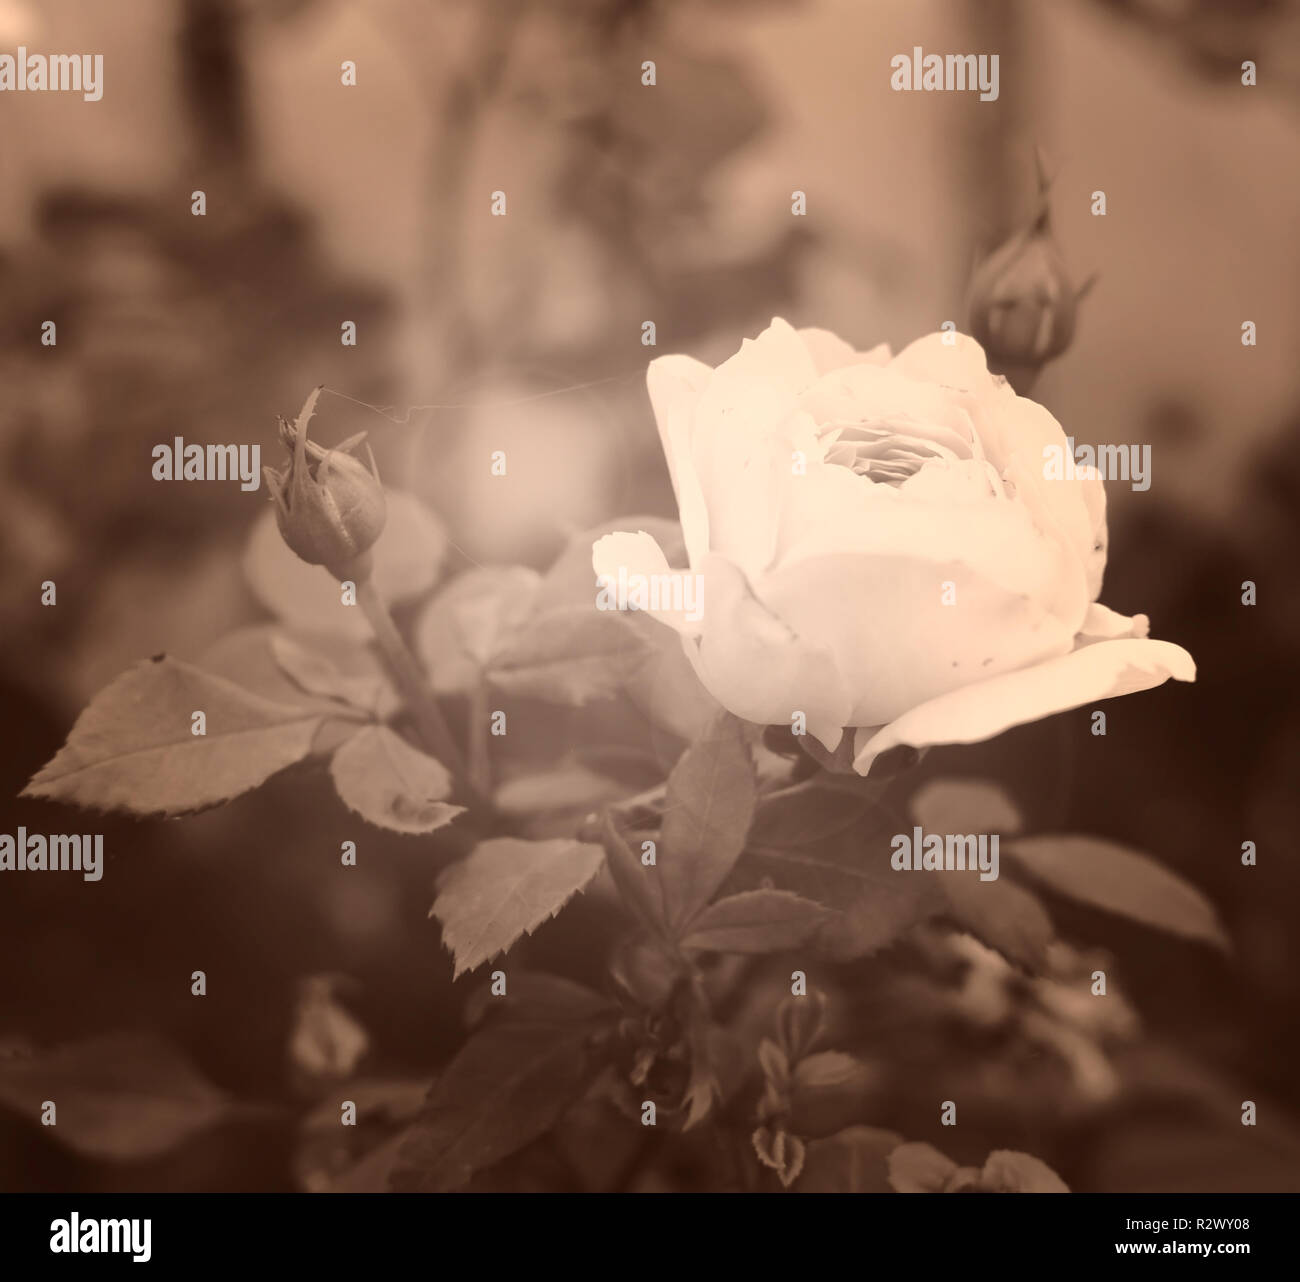 Gentle white rose close-up in soft blurred focus, sepia toned. Romance background, pastel and soft flower card. Vintage soft dreamy image. - Stock Image